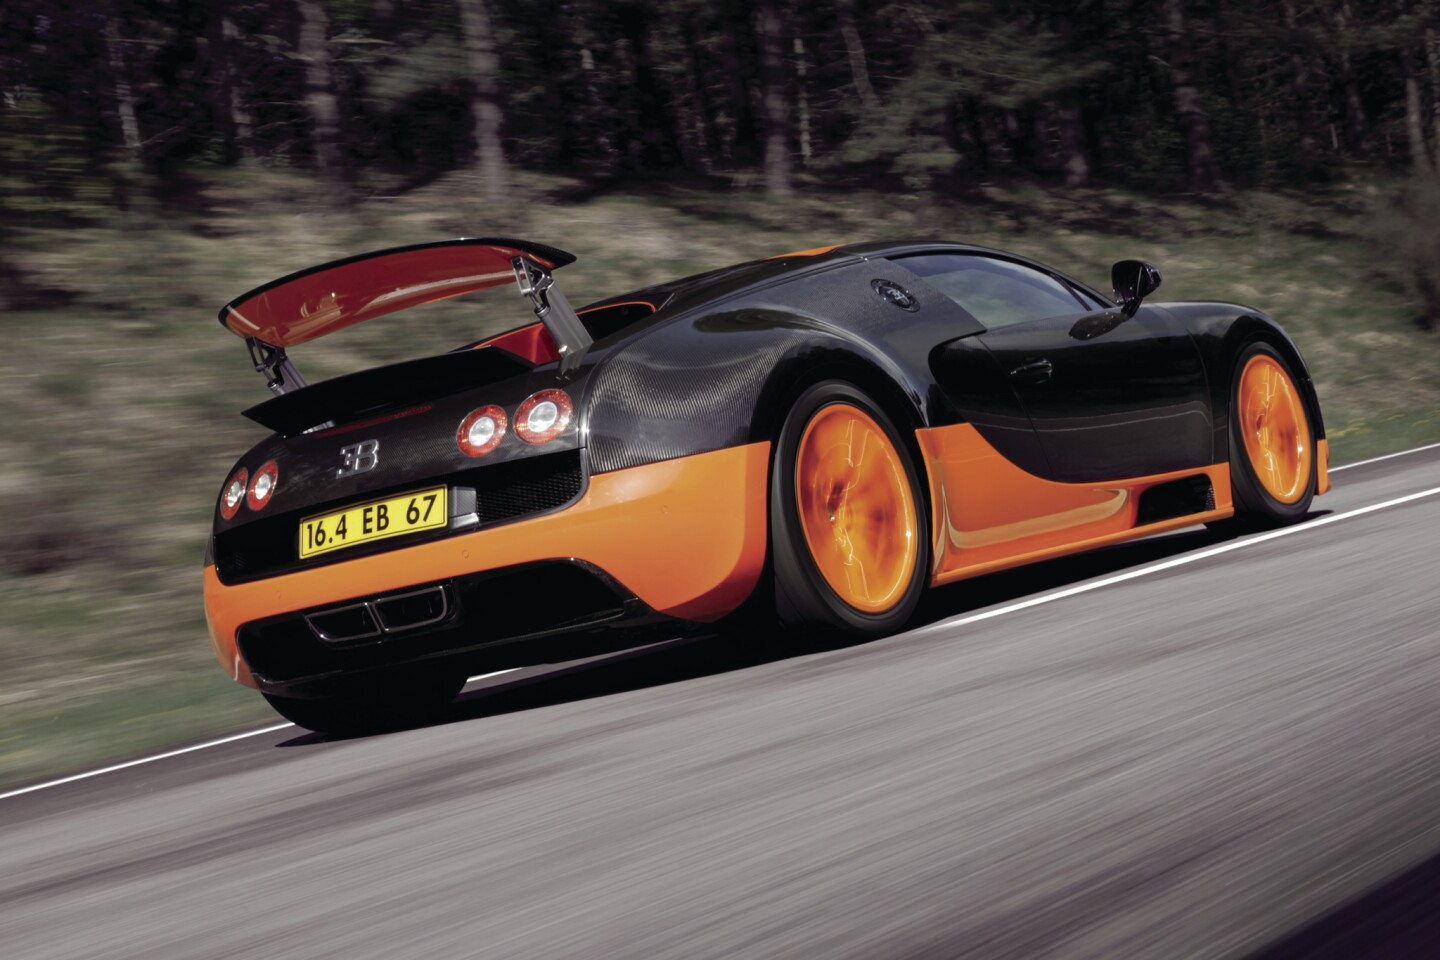 Guinness has reassigned the world record for fastest production car to the Bugatti Veyron Grand Sport. It hit just over 276 mph in a 2010 test.